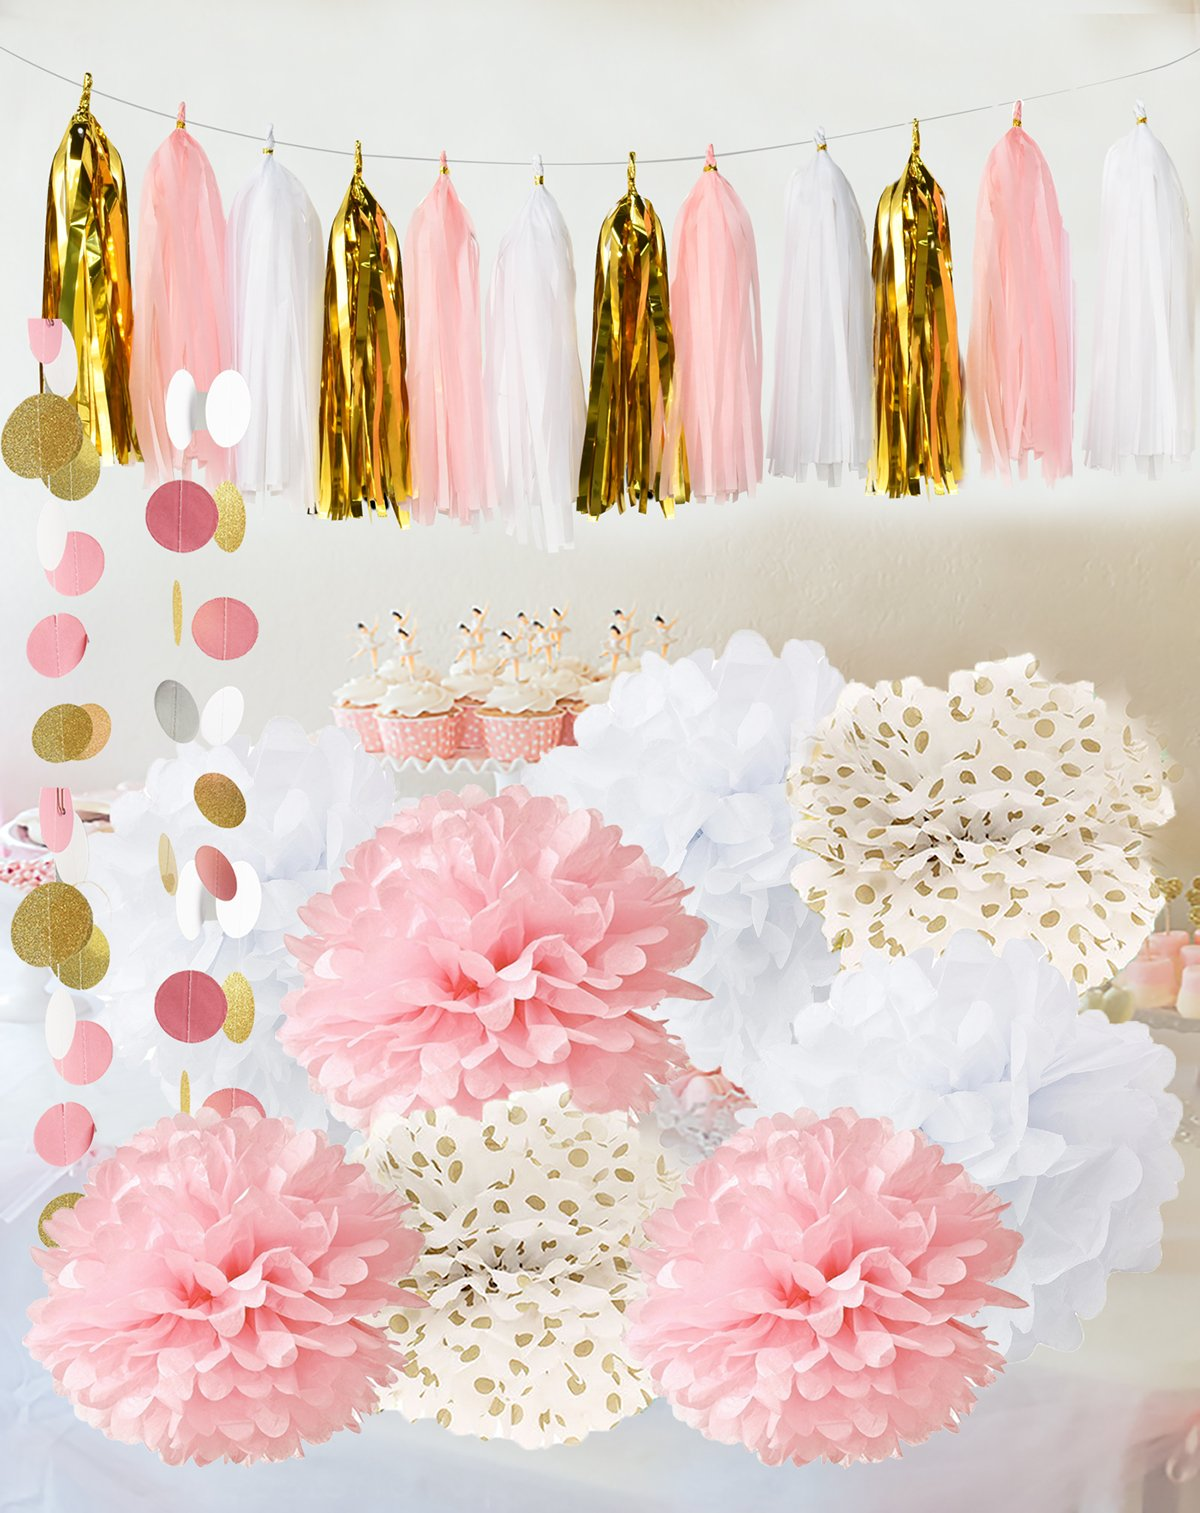 Qians Party Baby Pink Gold White Shower Decorations For Girl First Birthday